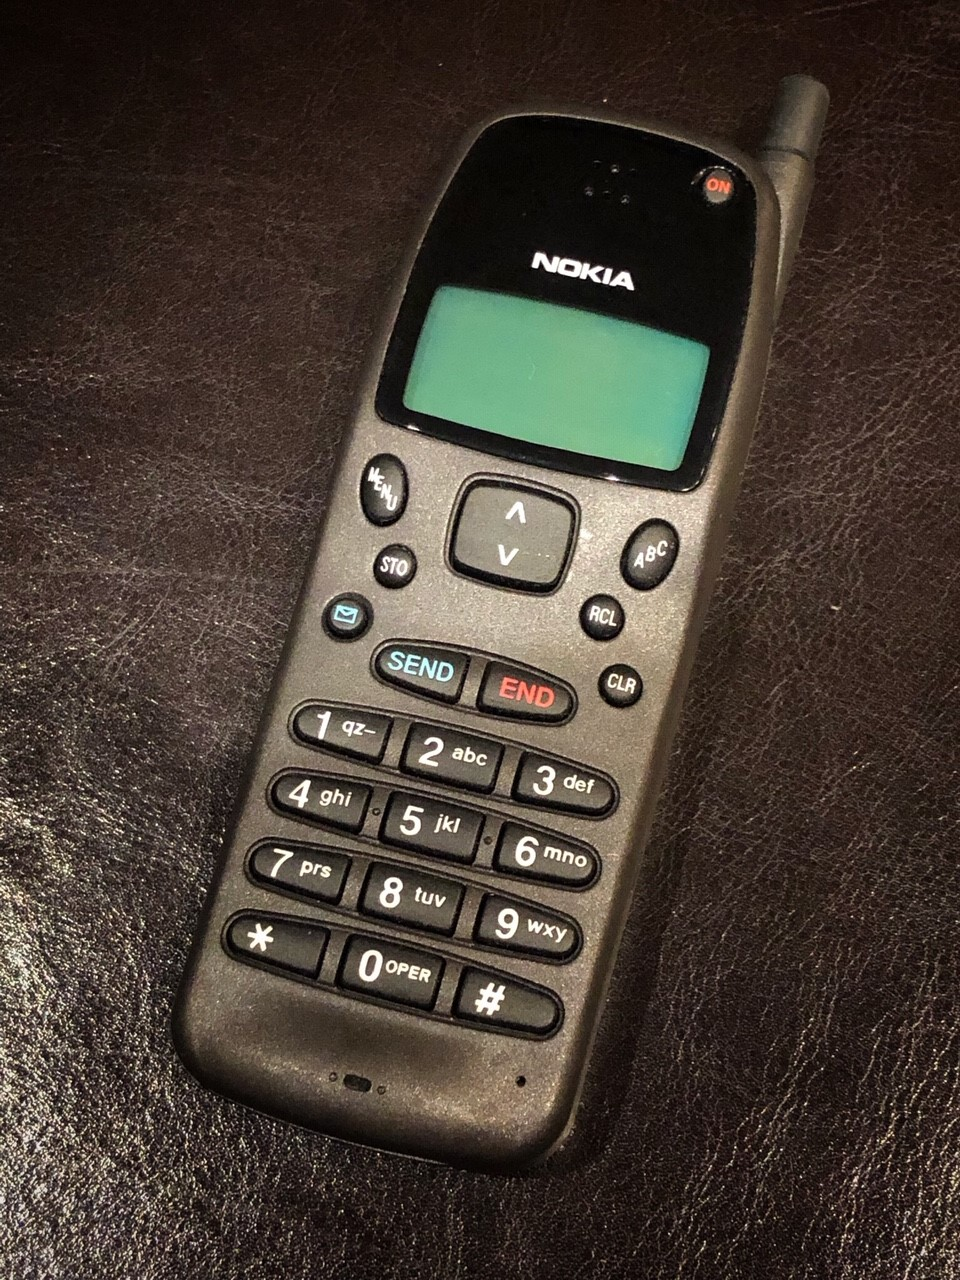 Ferrari of Mobile Phones – Nokia 232